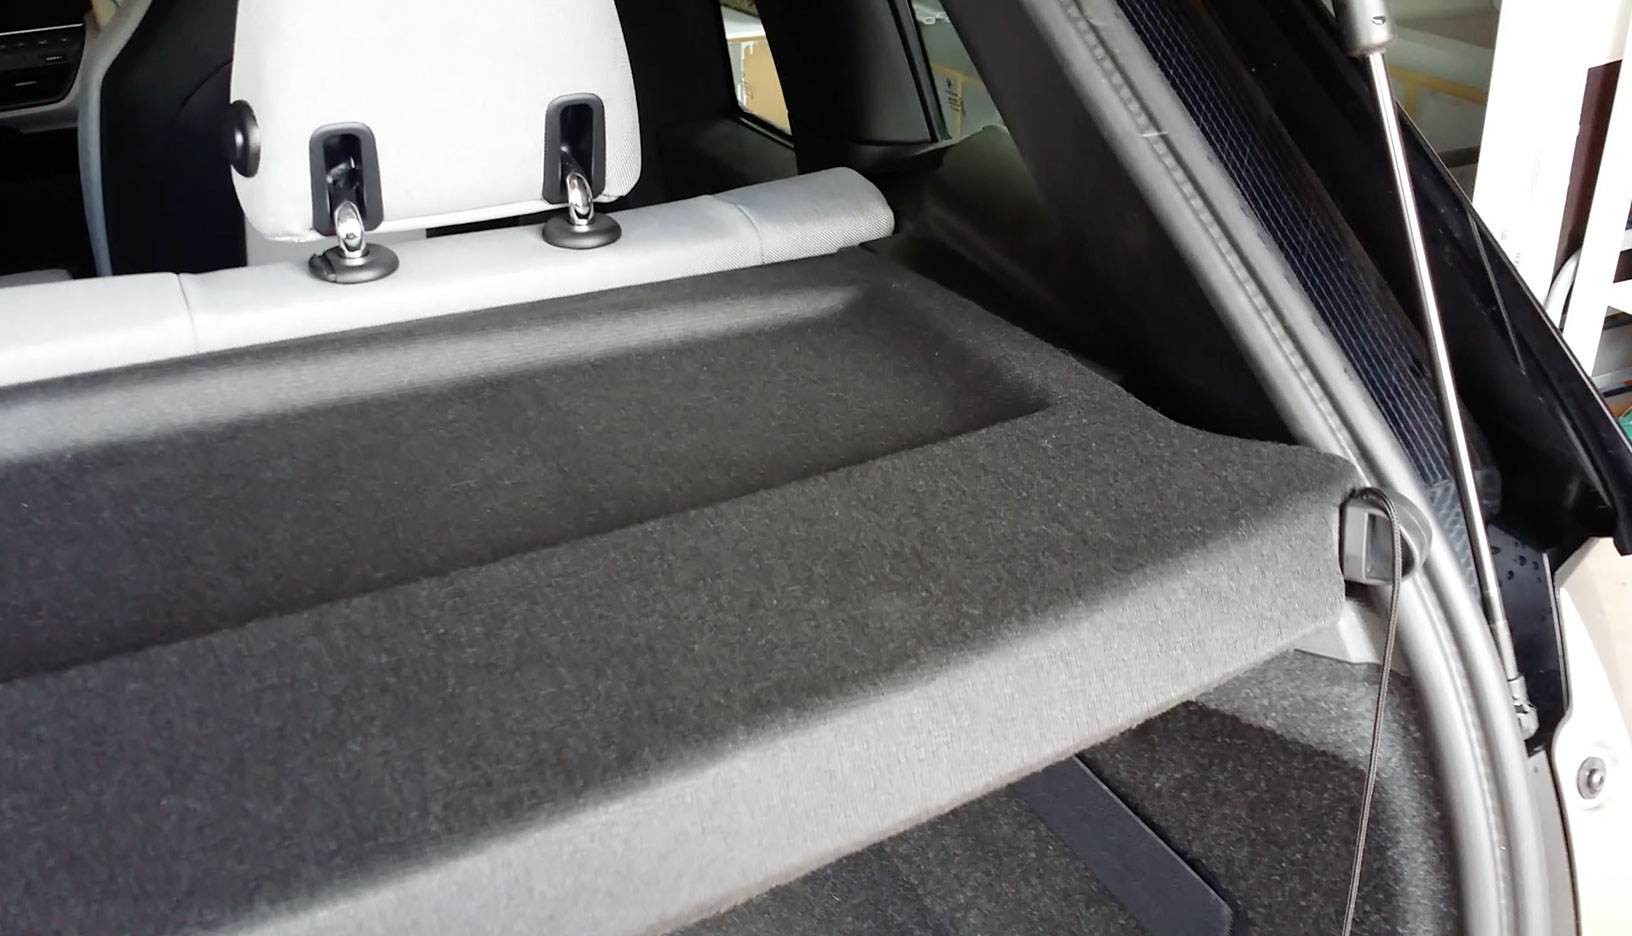 BMW i3 Parcel Shelf Removal Tip